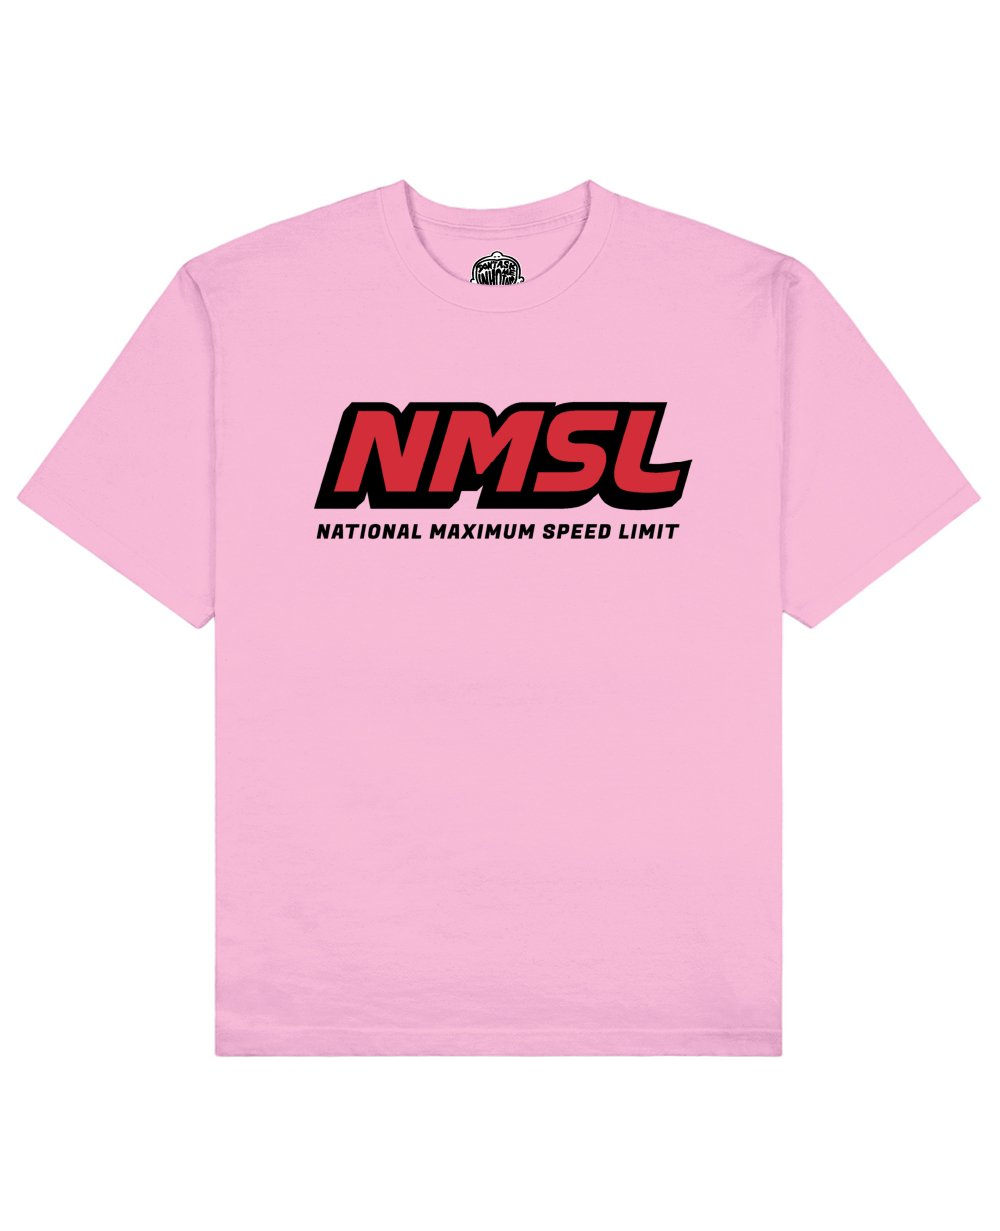 NMSL Print T-shirt in Pink - T-Shirts - Don't ask me who I am - BRANMA